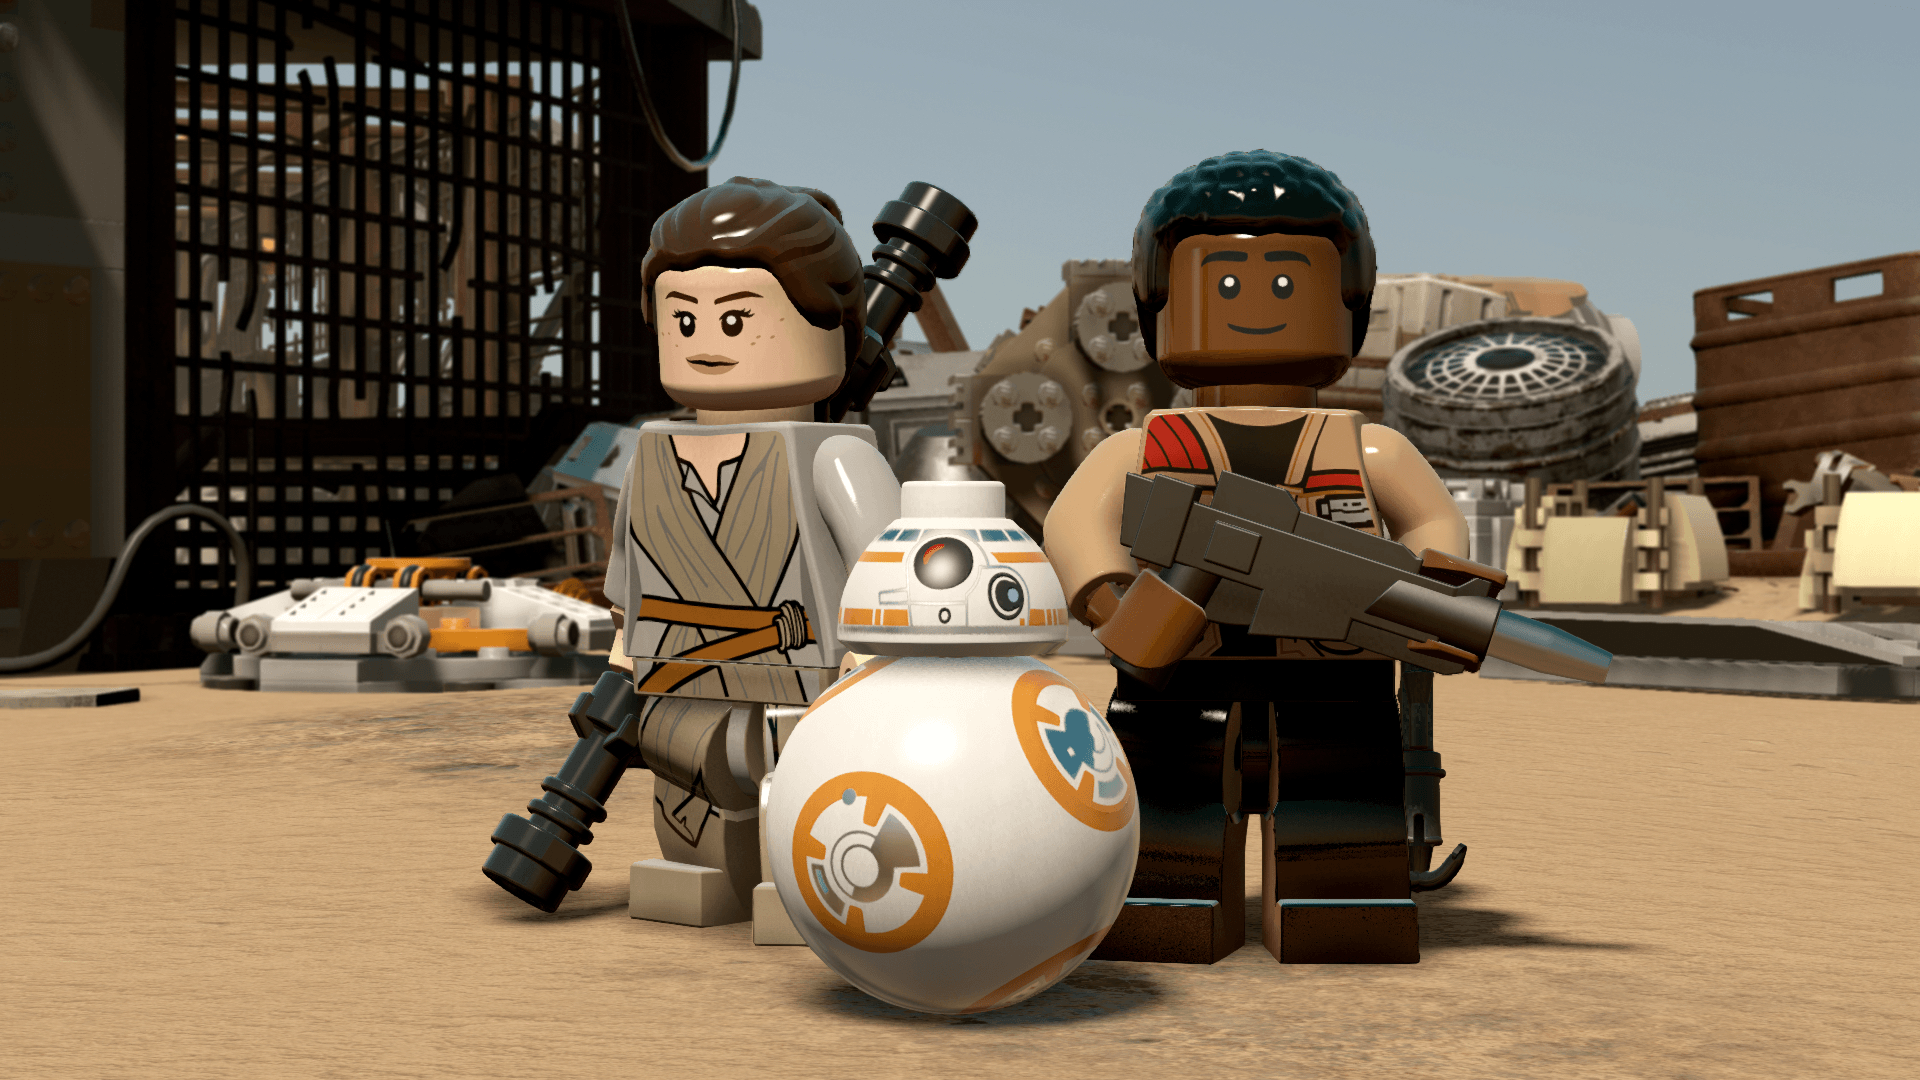 Rey together with Finn and DB8 in Lego form